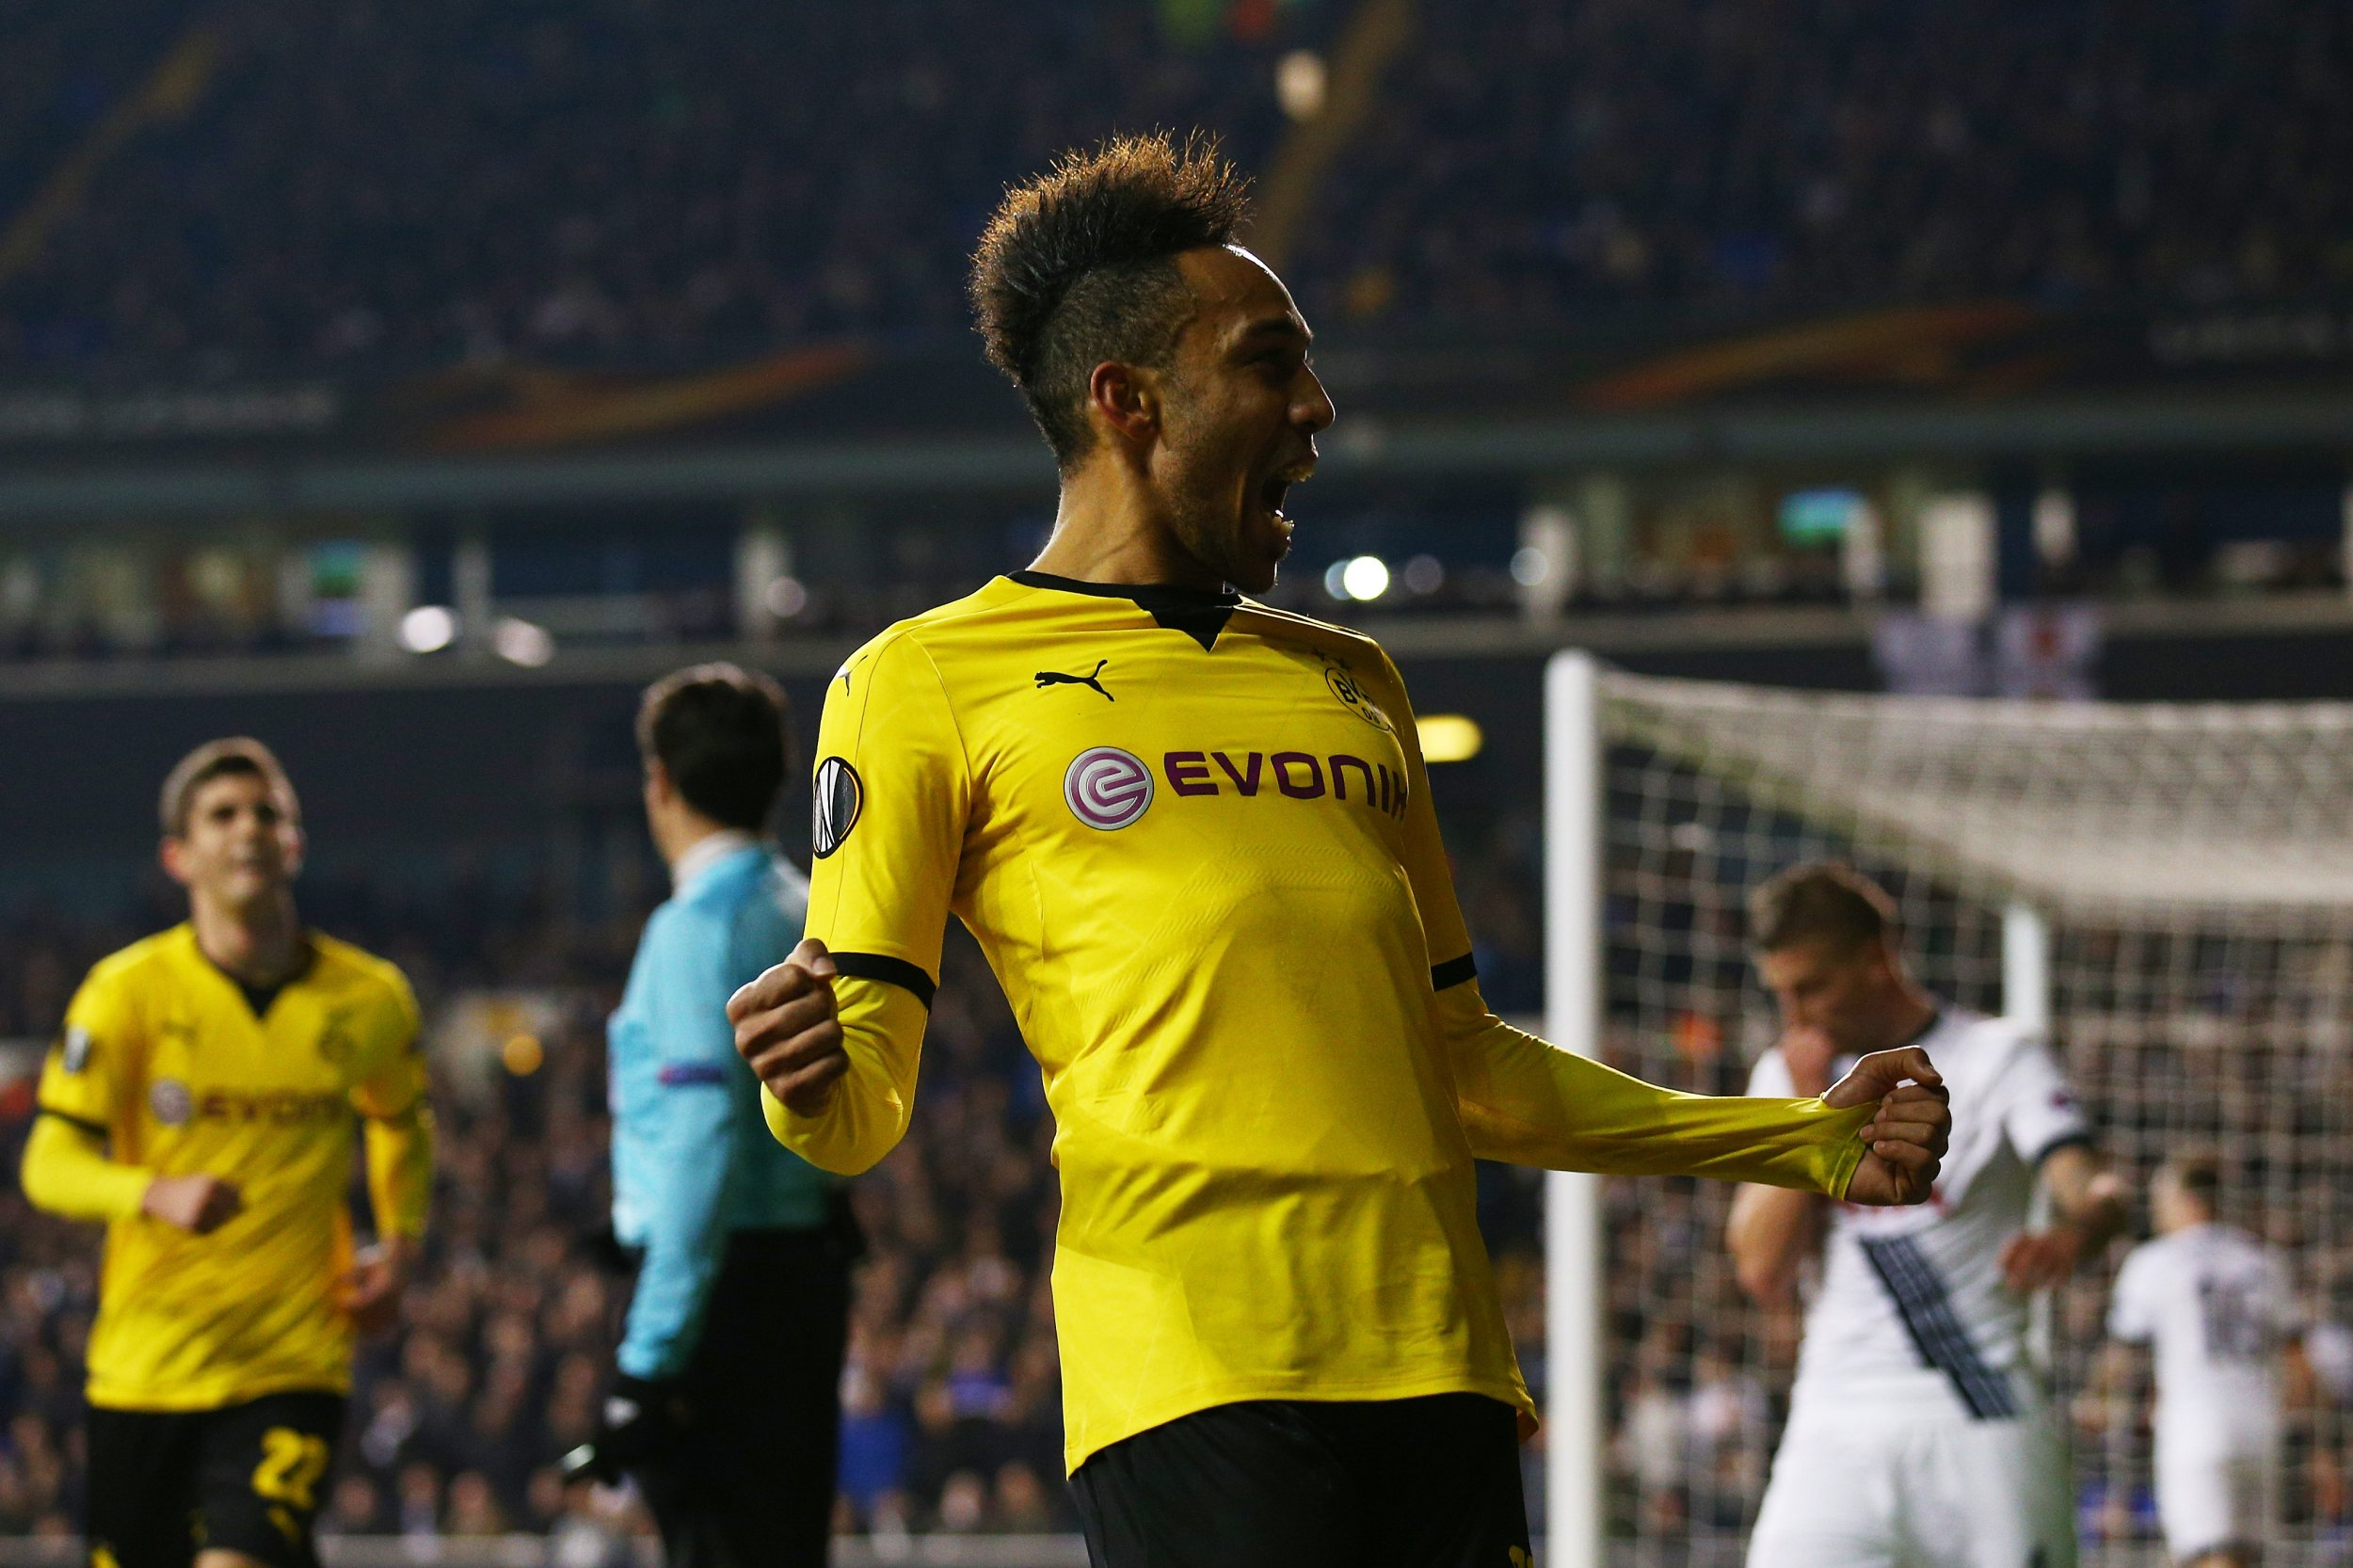 Pierre-Emerick Aubameyang has attracted the interest of Manchester United and Real Madrid.